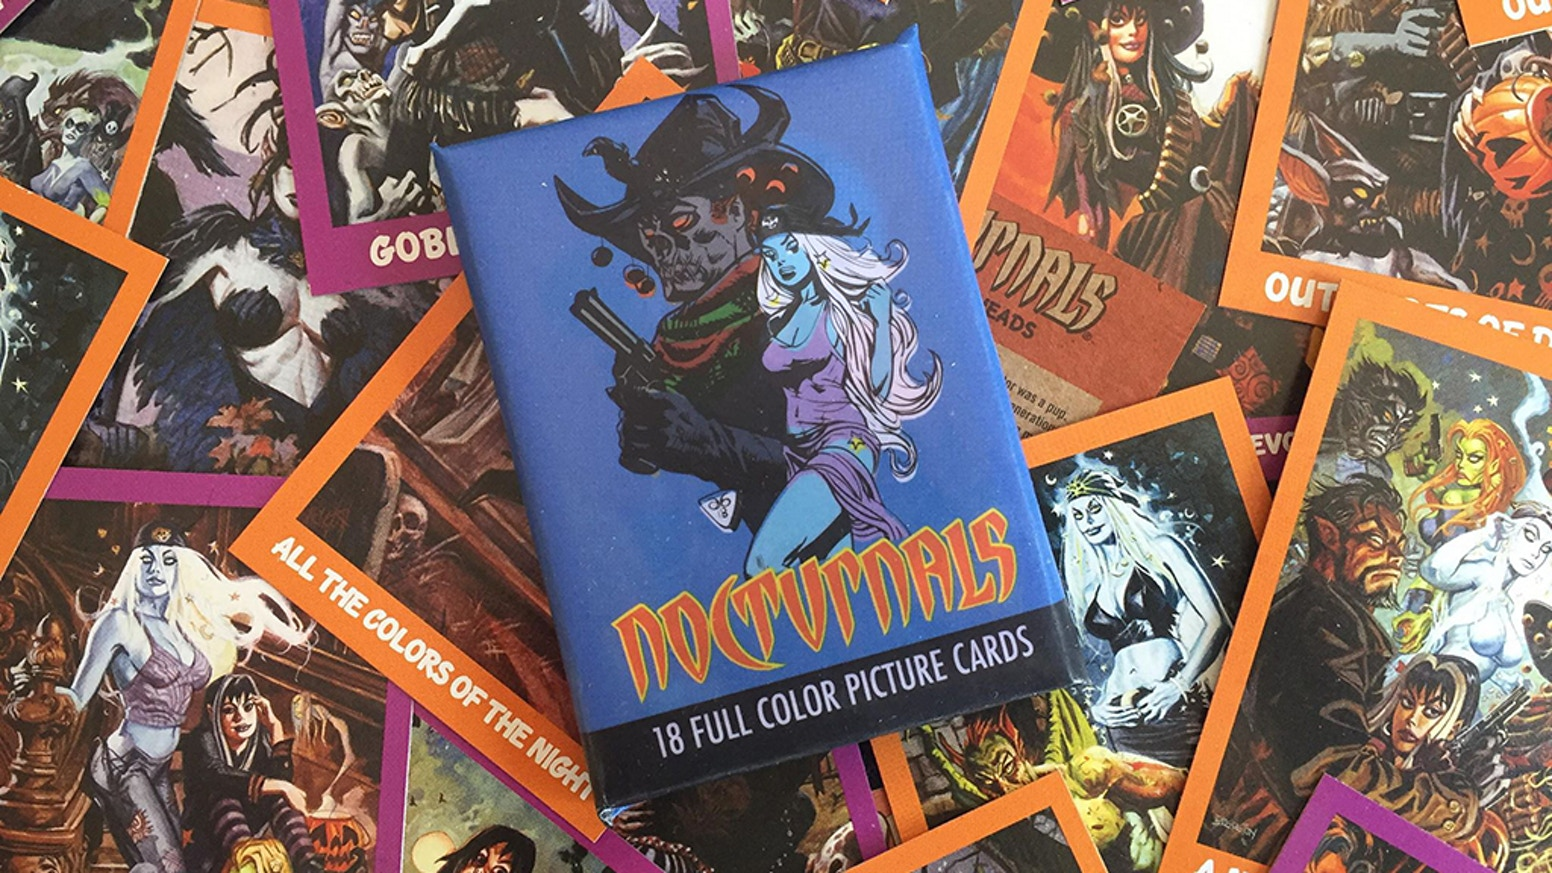 Nocturnals trading cards by Dan Brereton